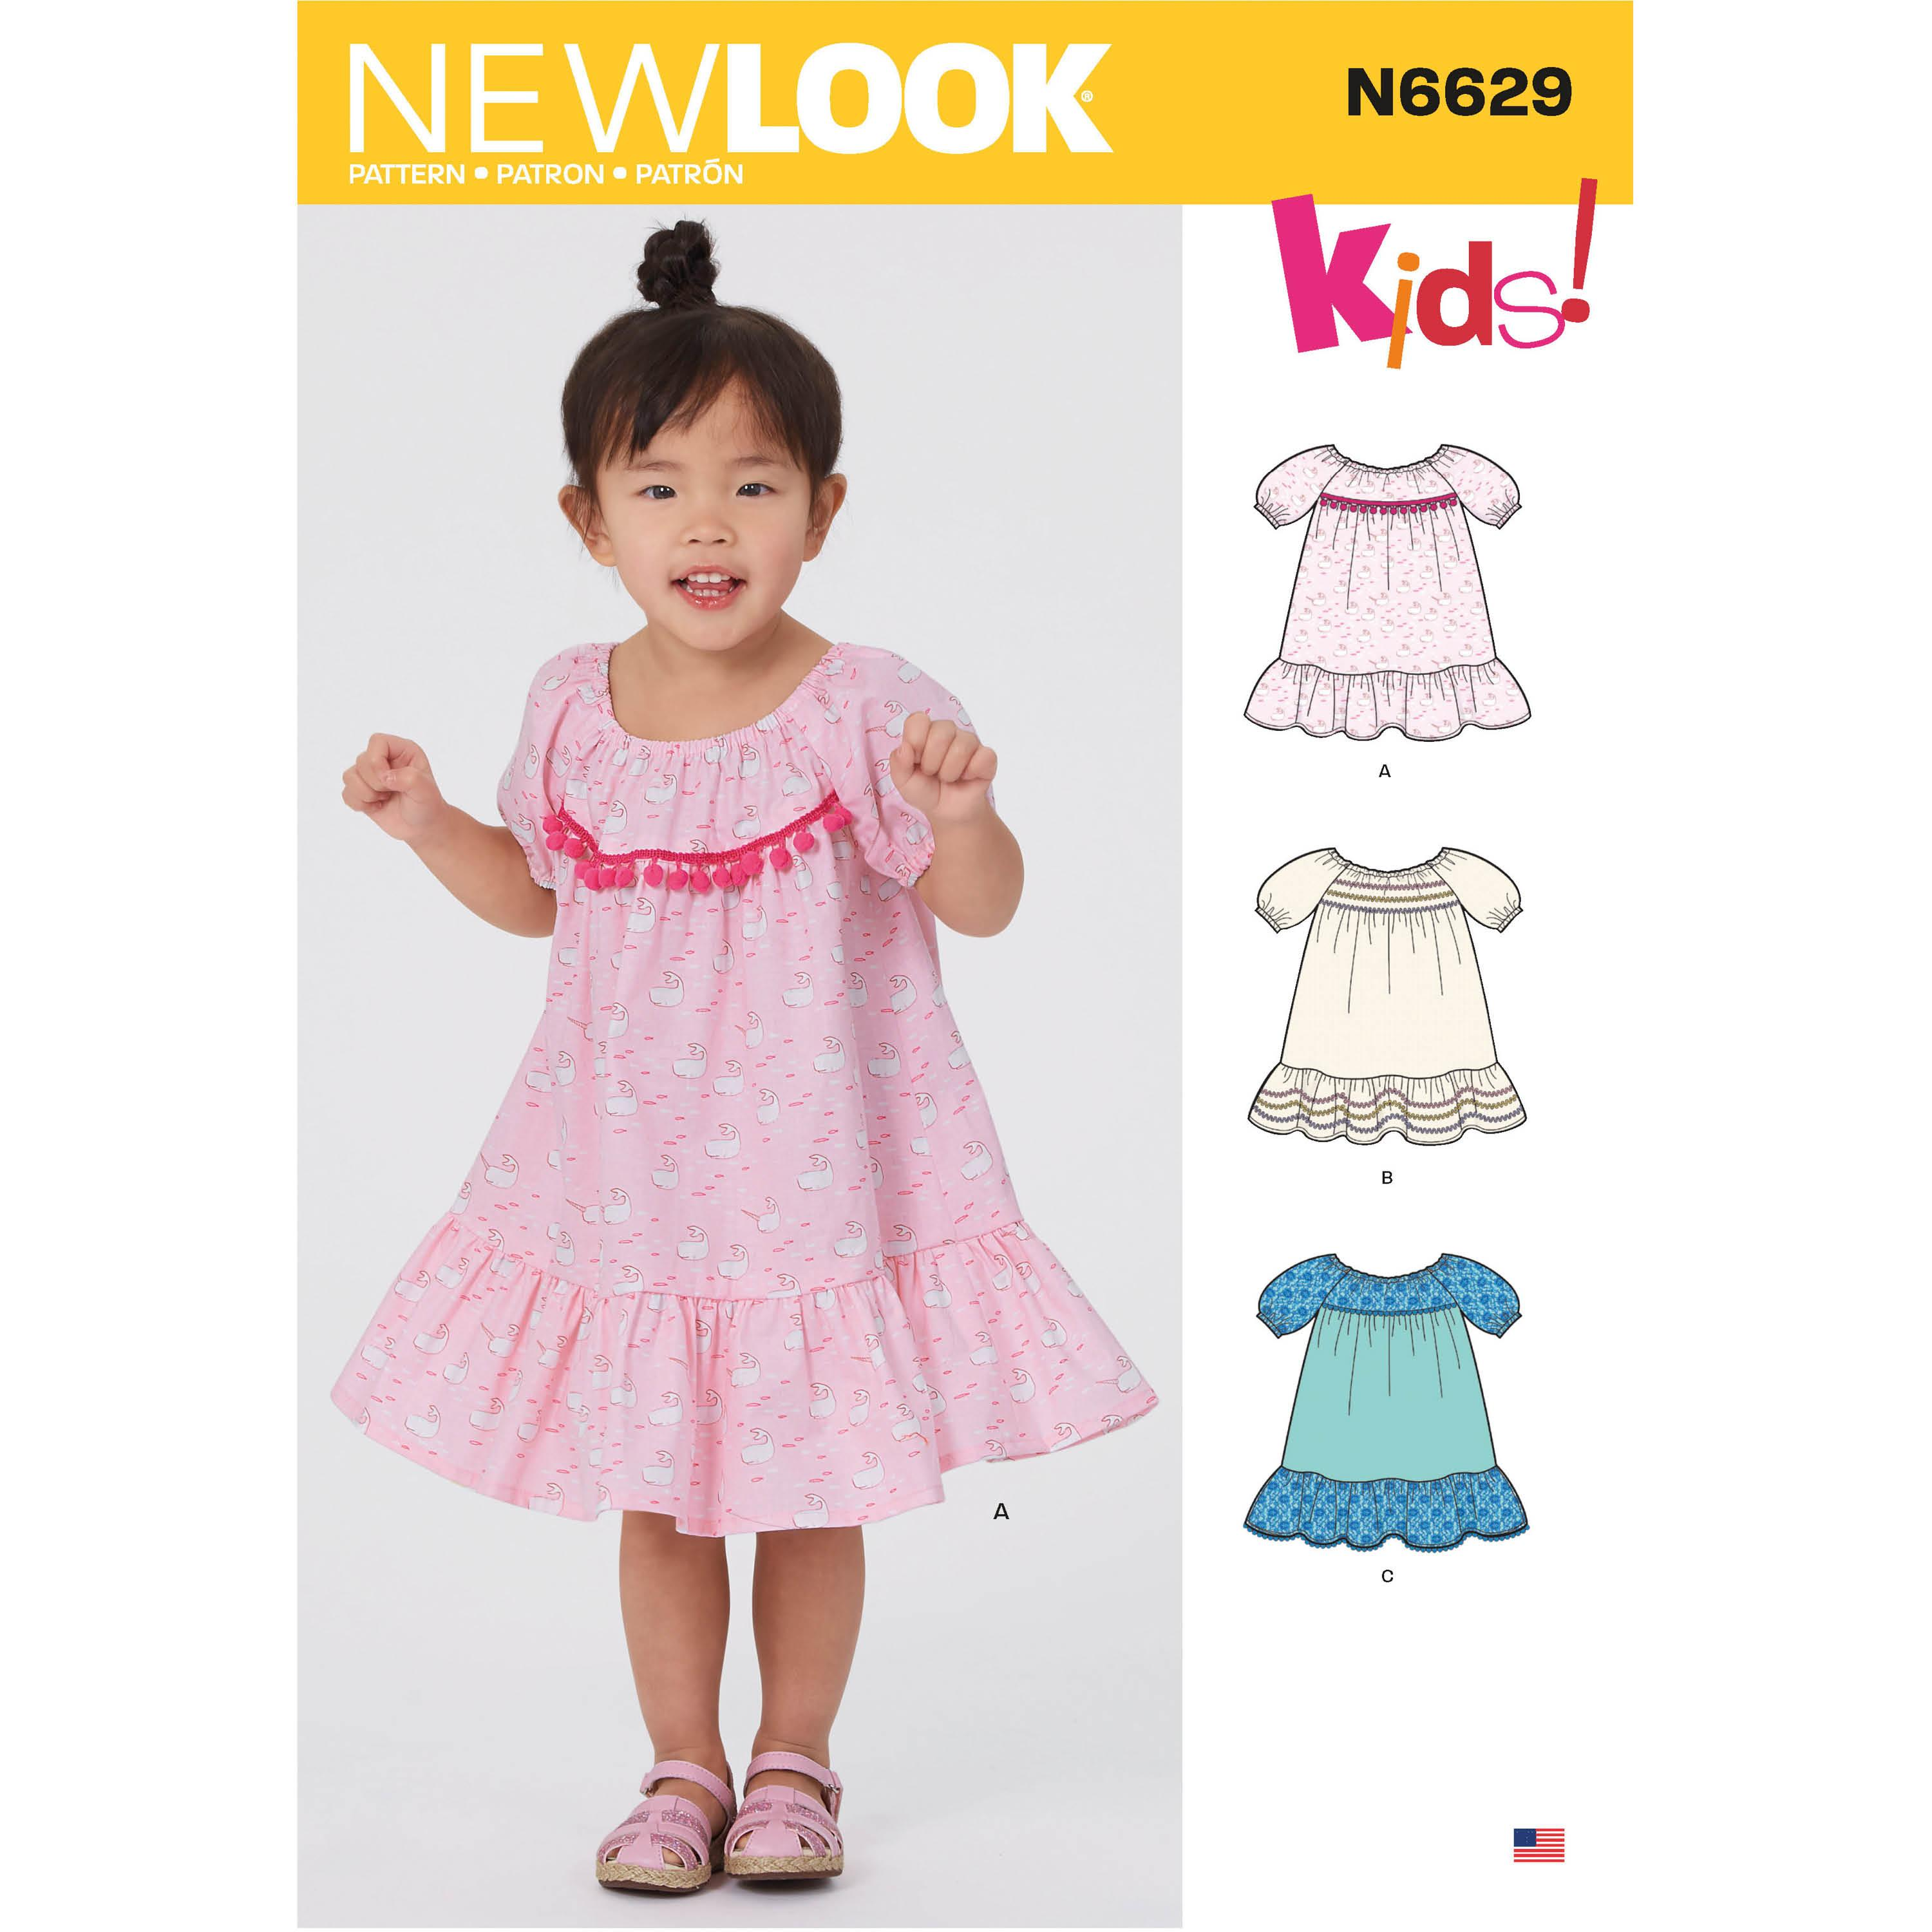 NewLook Sewing Pattern N6629 Toddler's Dresses